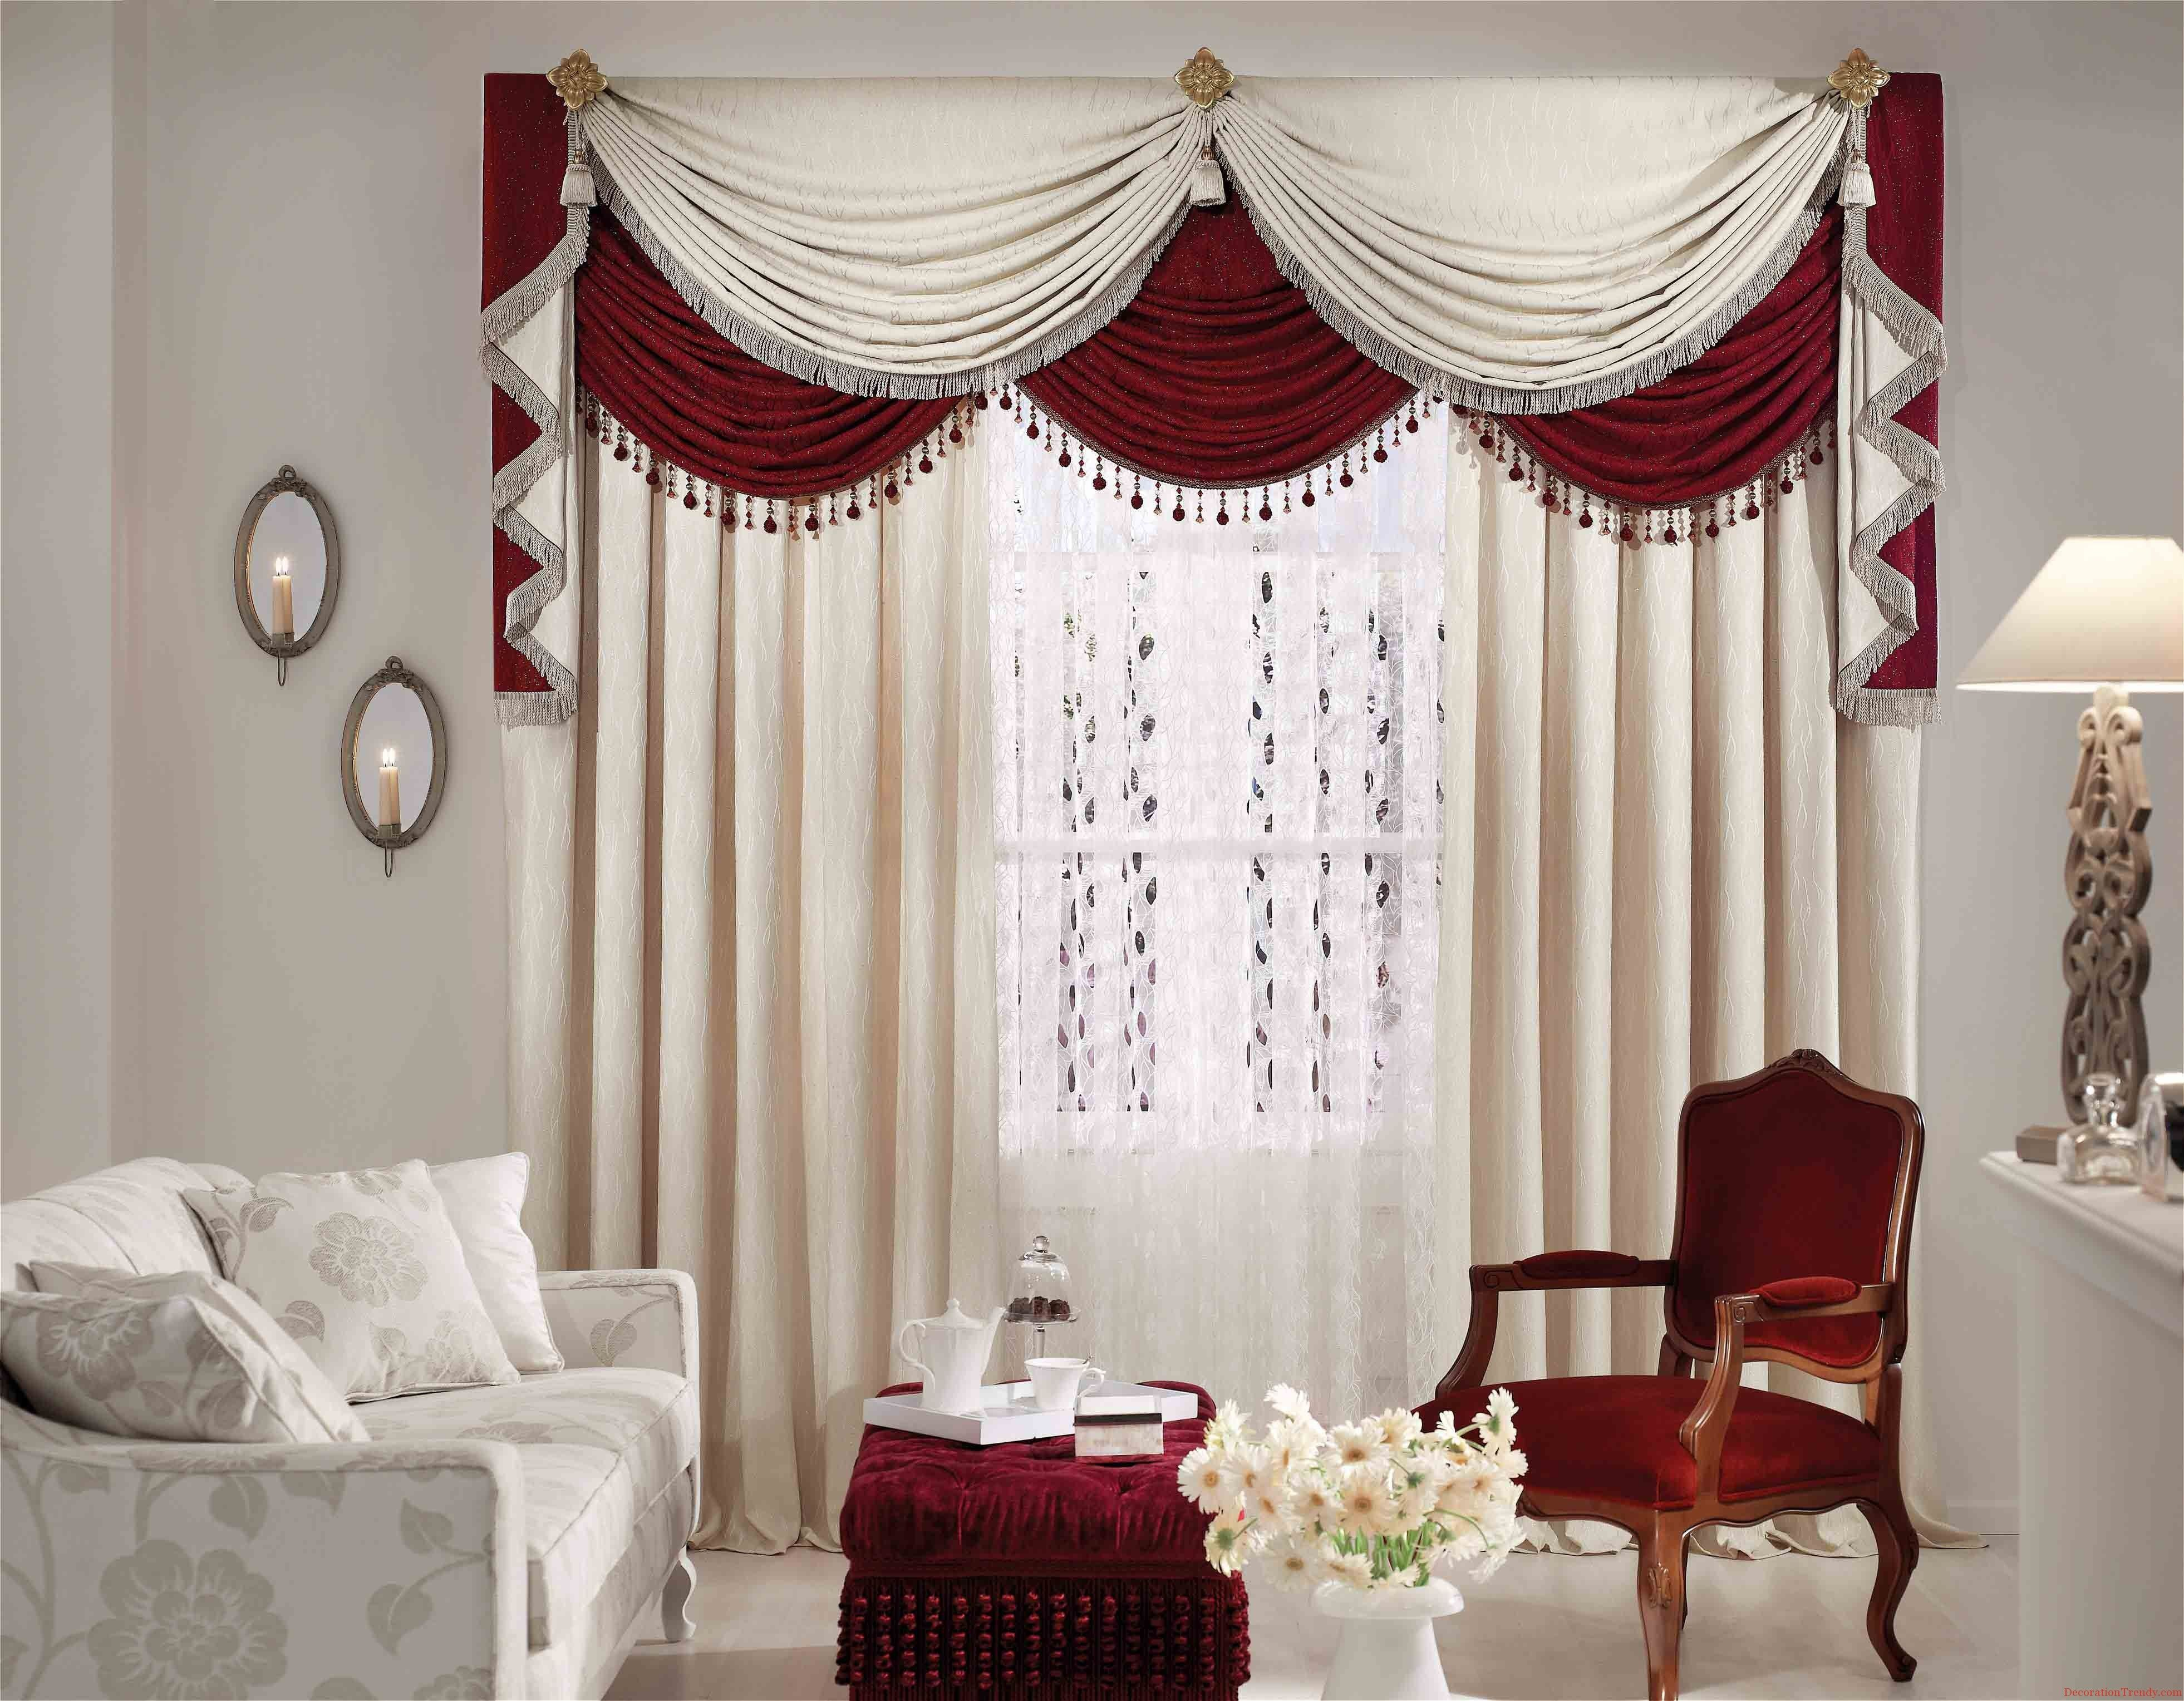 Two Tone Drapes Curtain With Tassel And White Sheer Curtain For ...